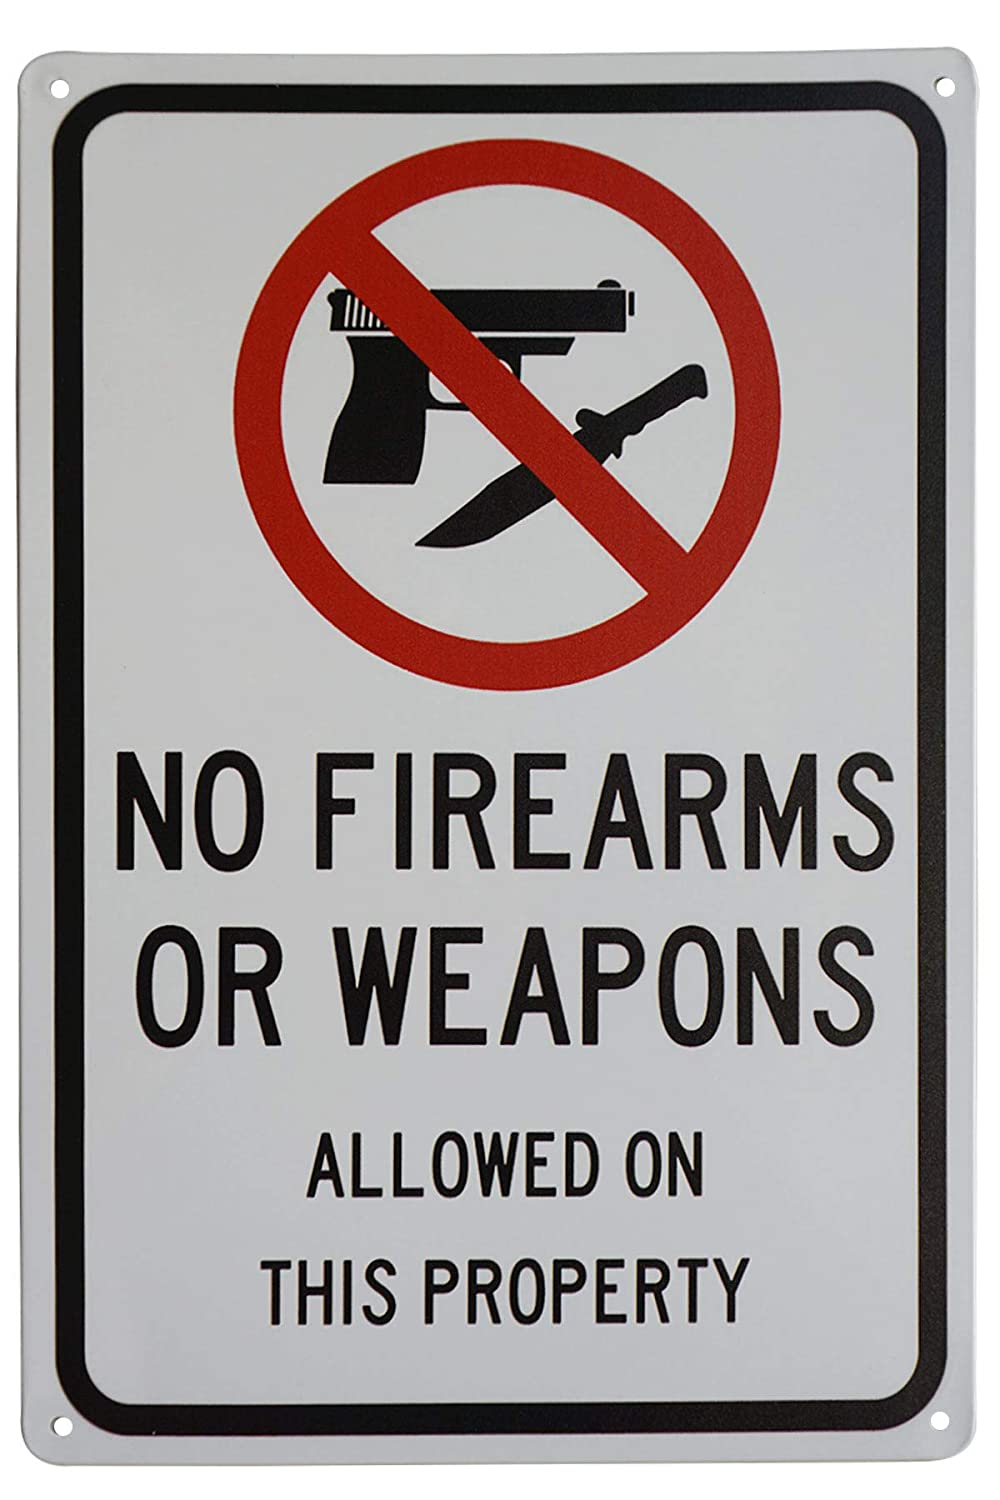 LASMINE Funny Gun Sign No Firearms Guns Or Weapons Allowed on This Property Sign Security Warning Signs for Home Wall Decor 8X12 Inch